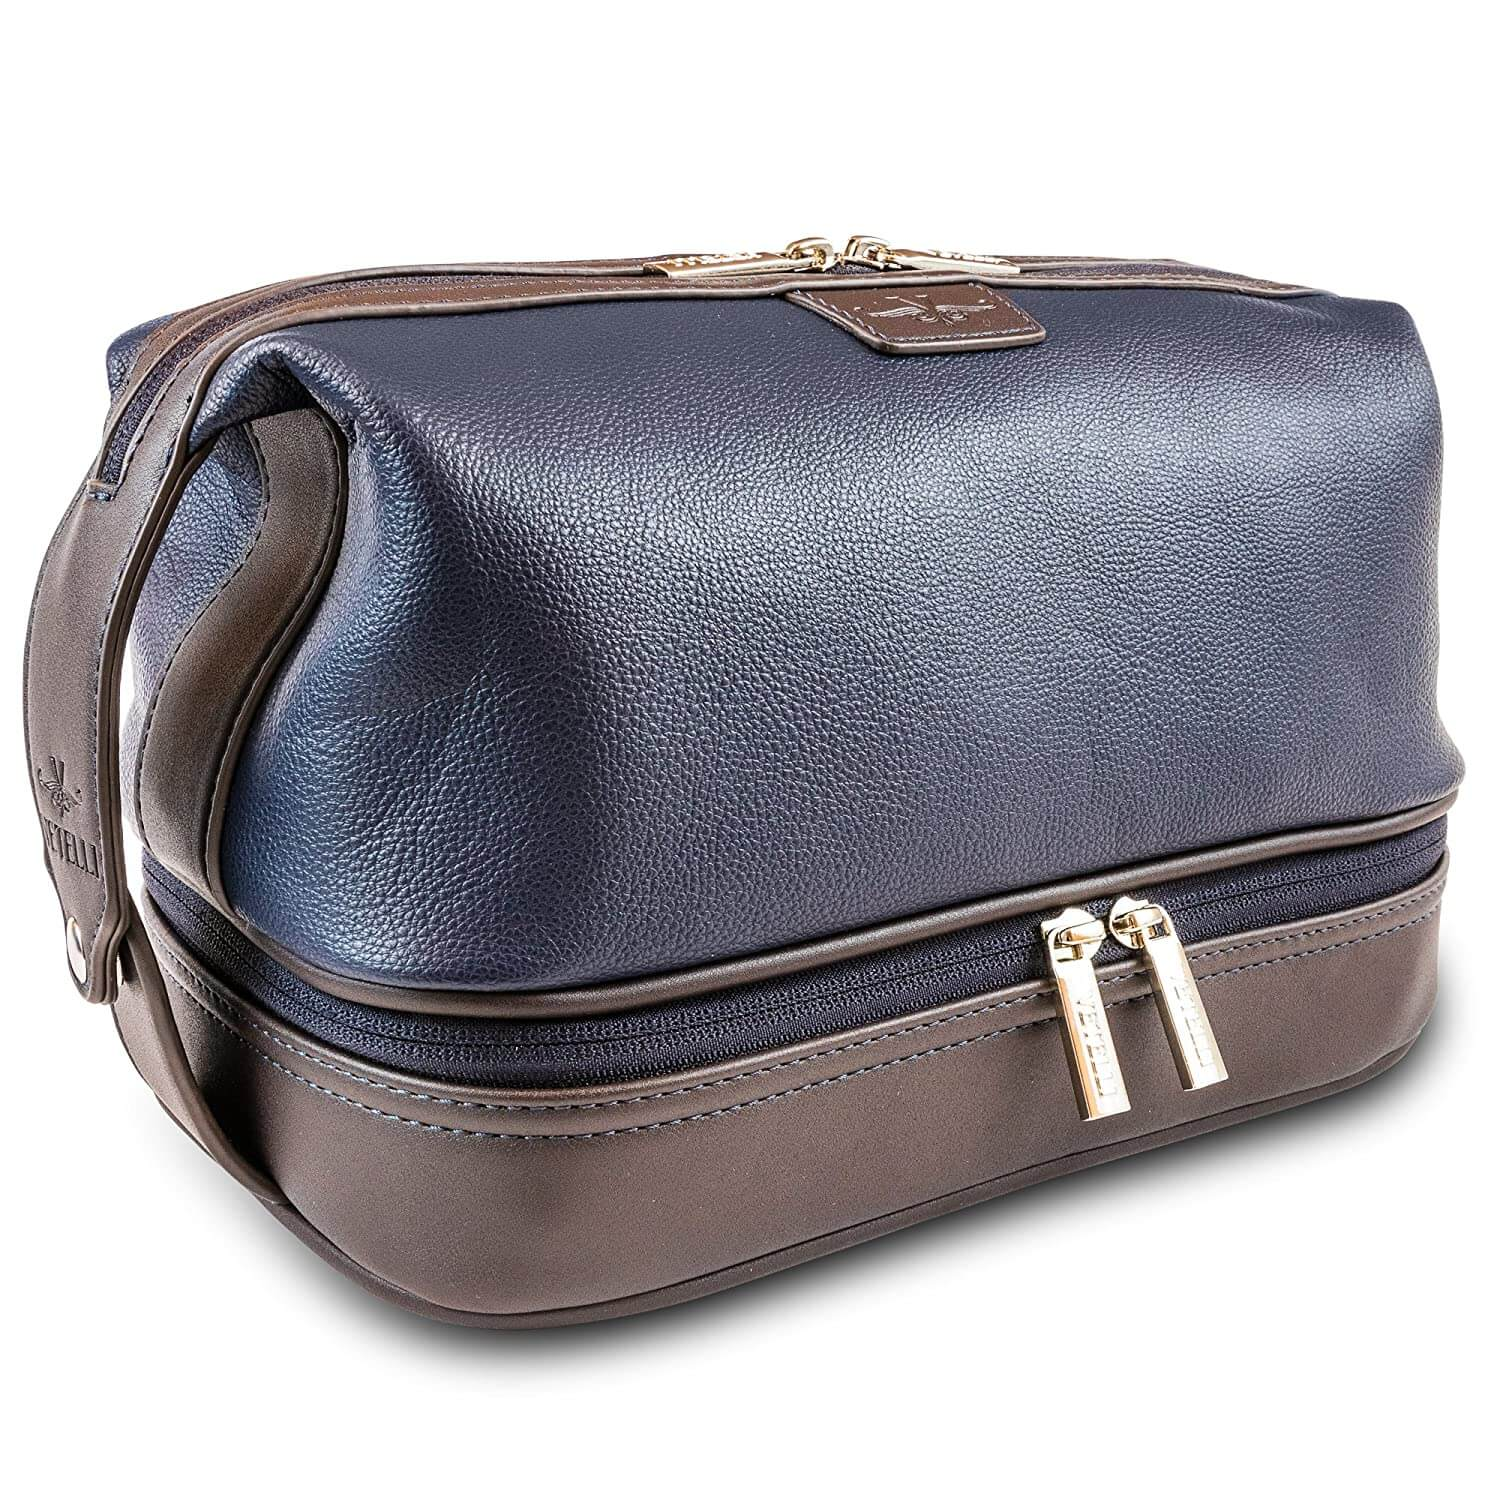 Vetelli Leo Large Mens Leather Toiletry & Shave Bag